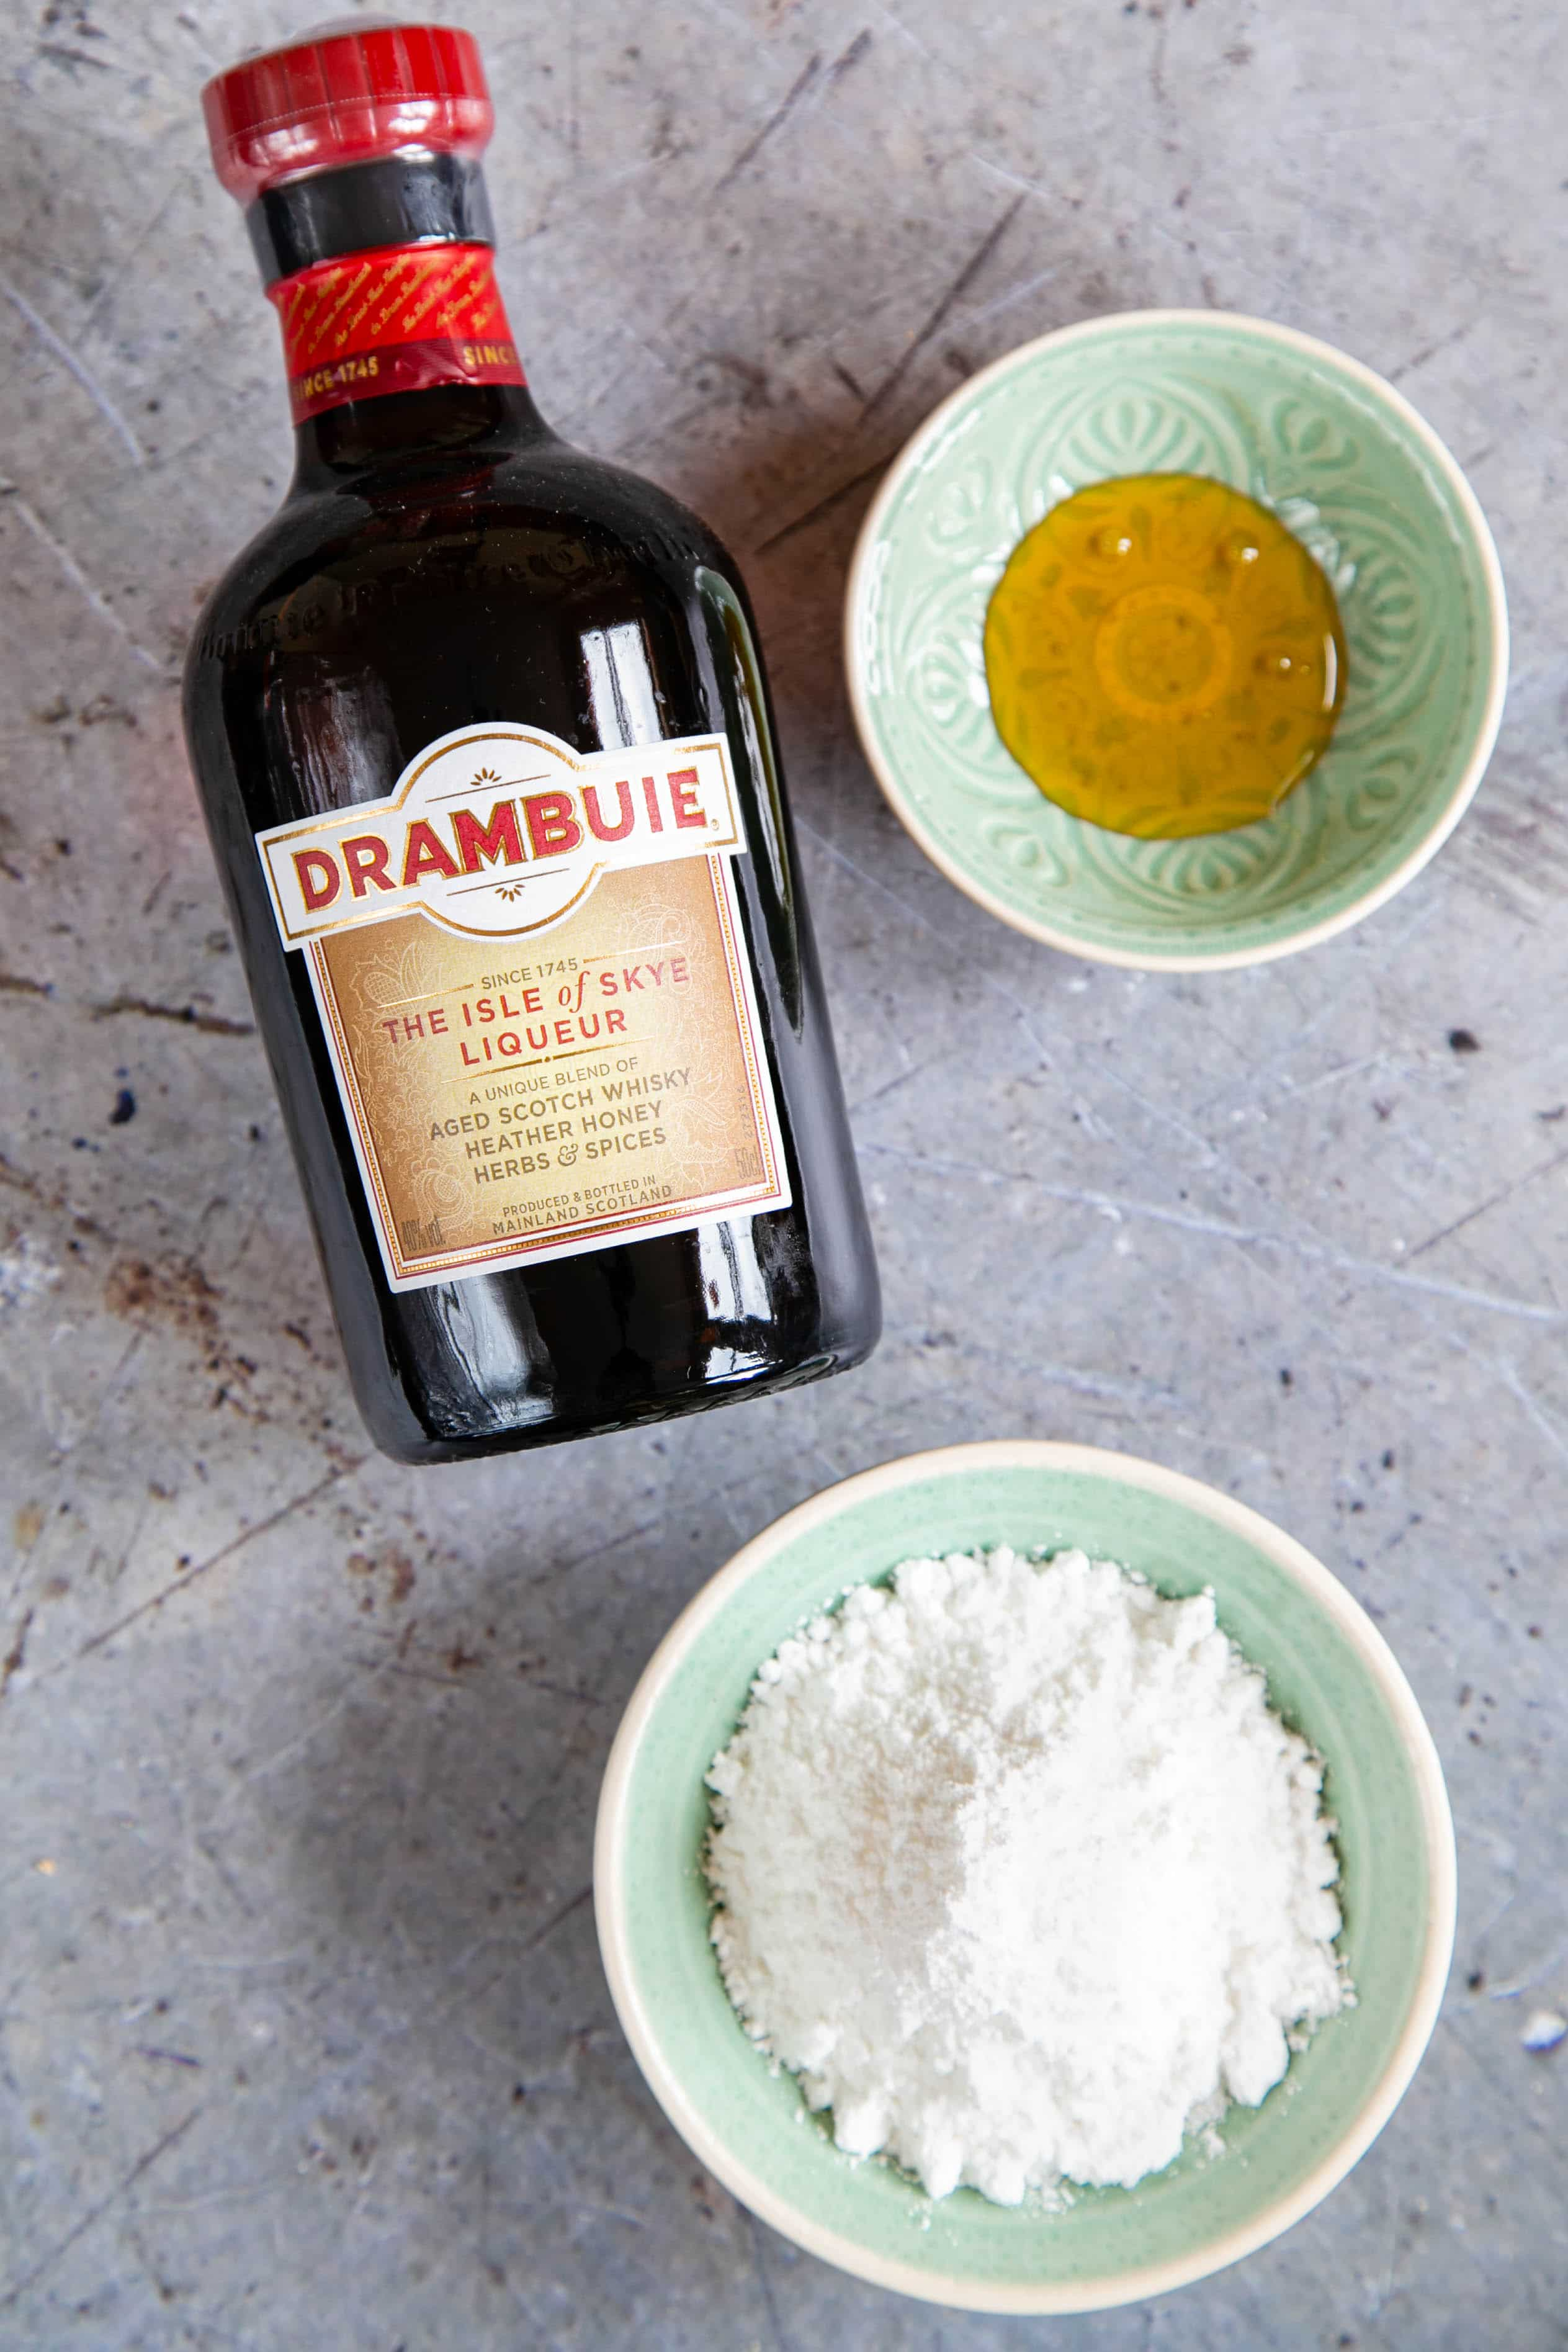 The ingredients for Drambuie icing: Drambuie, icing sugar and golden syrup.